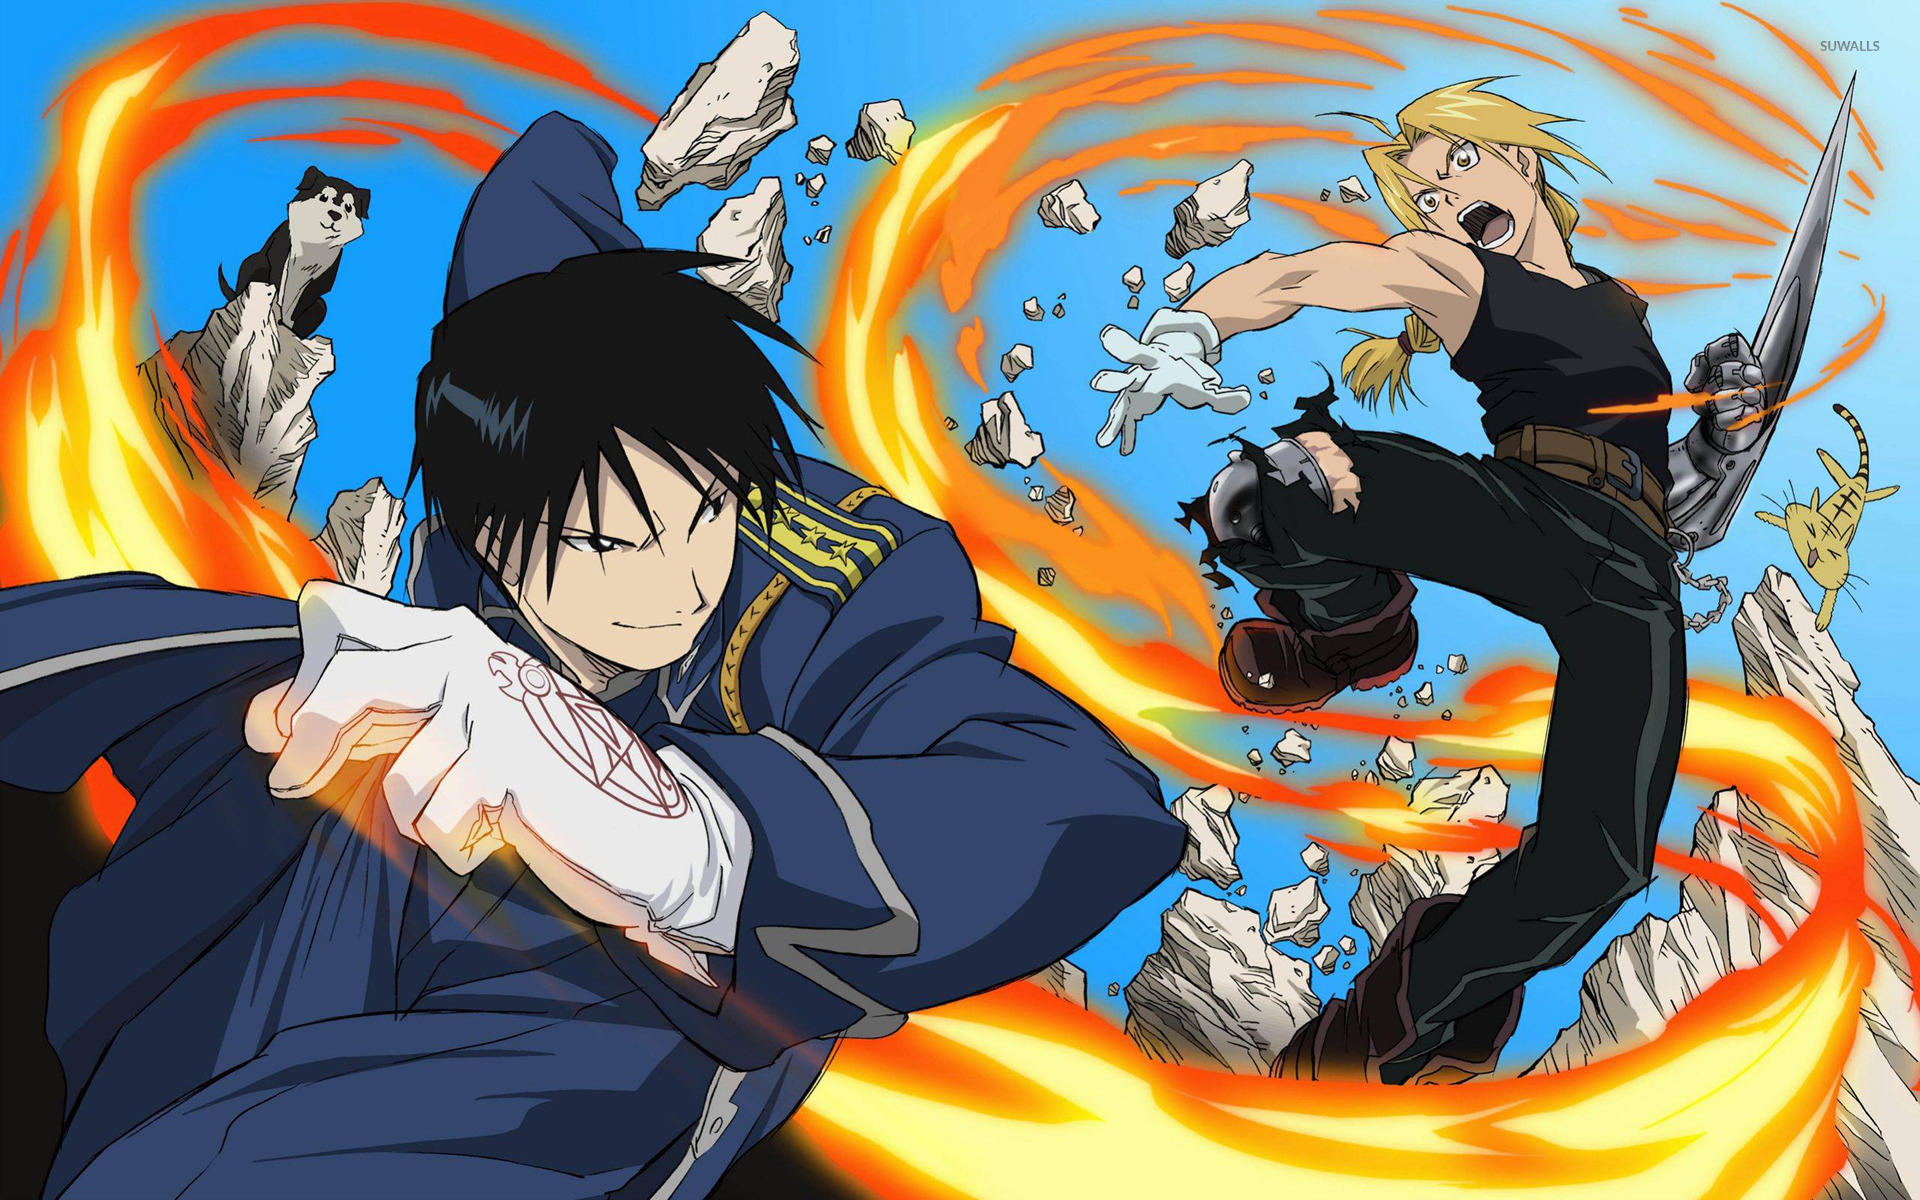 Mustang   Fullmetal Alchemist wallpaper   Anime wallpapers   16031 1366x768